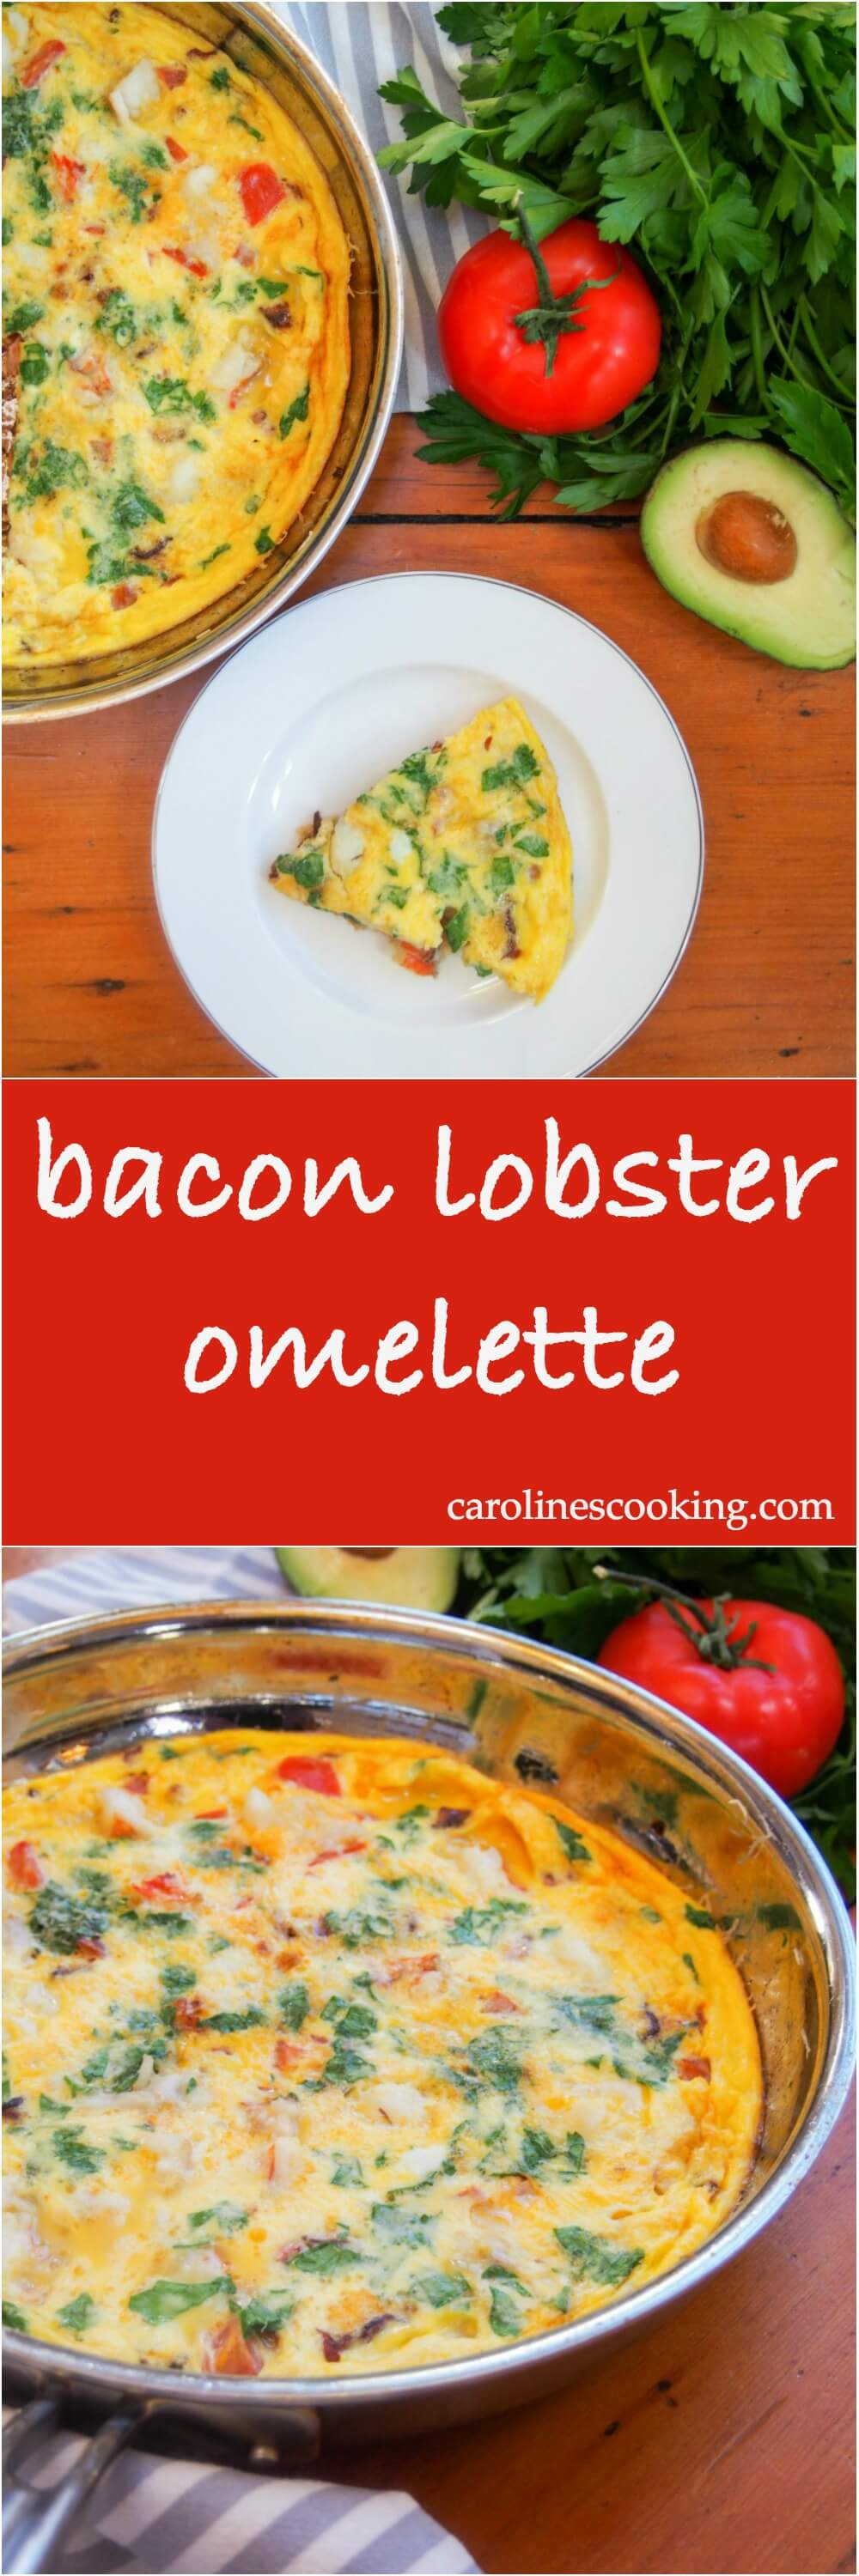 bacon lobster omelette - Whether you're looking for a tasty brunch or easy lunch/dinner, this bacon lobster omelette is easy to make but feels a little indulgent & special. So good! #lobster #valentinesday #brunch